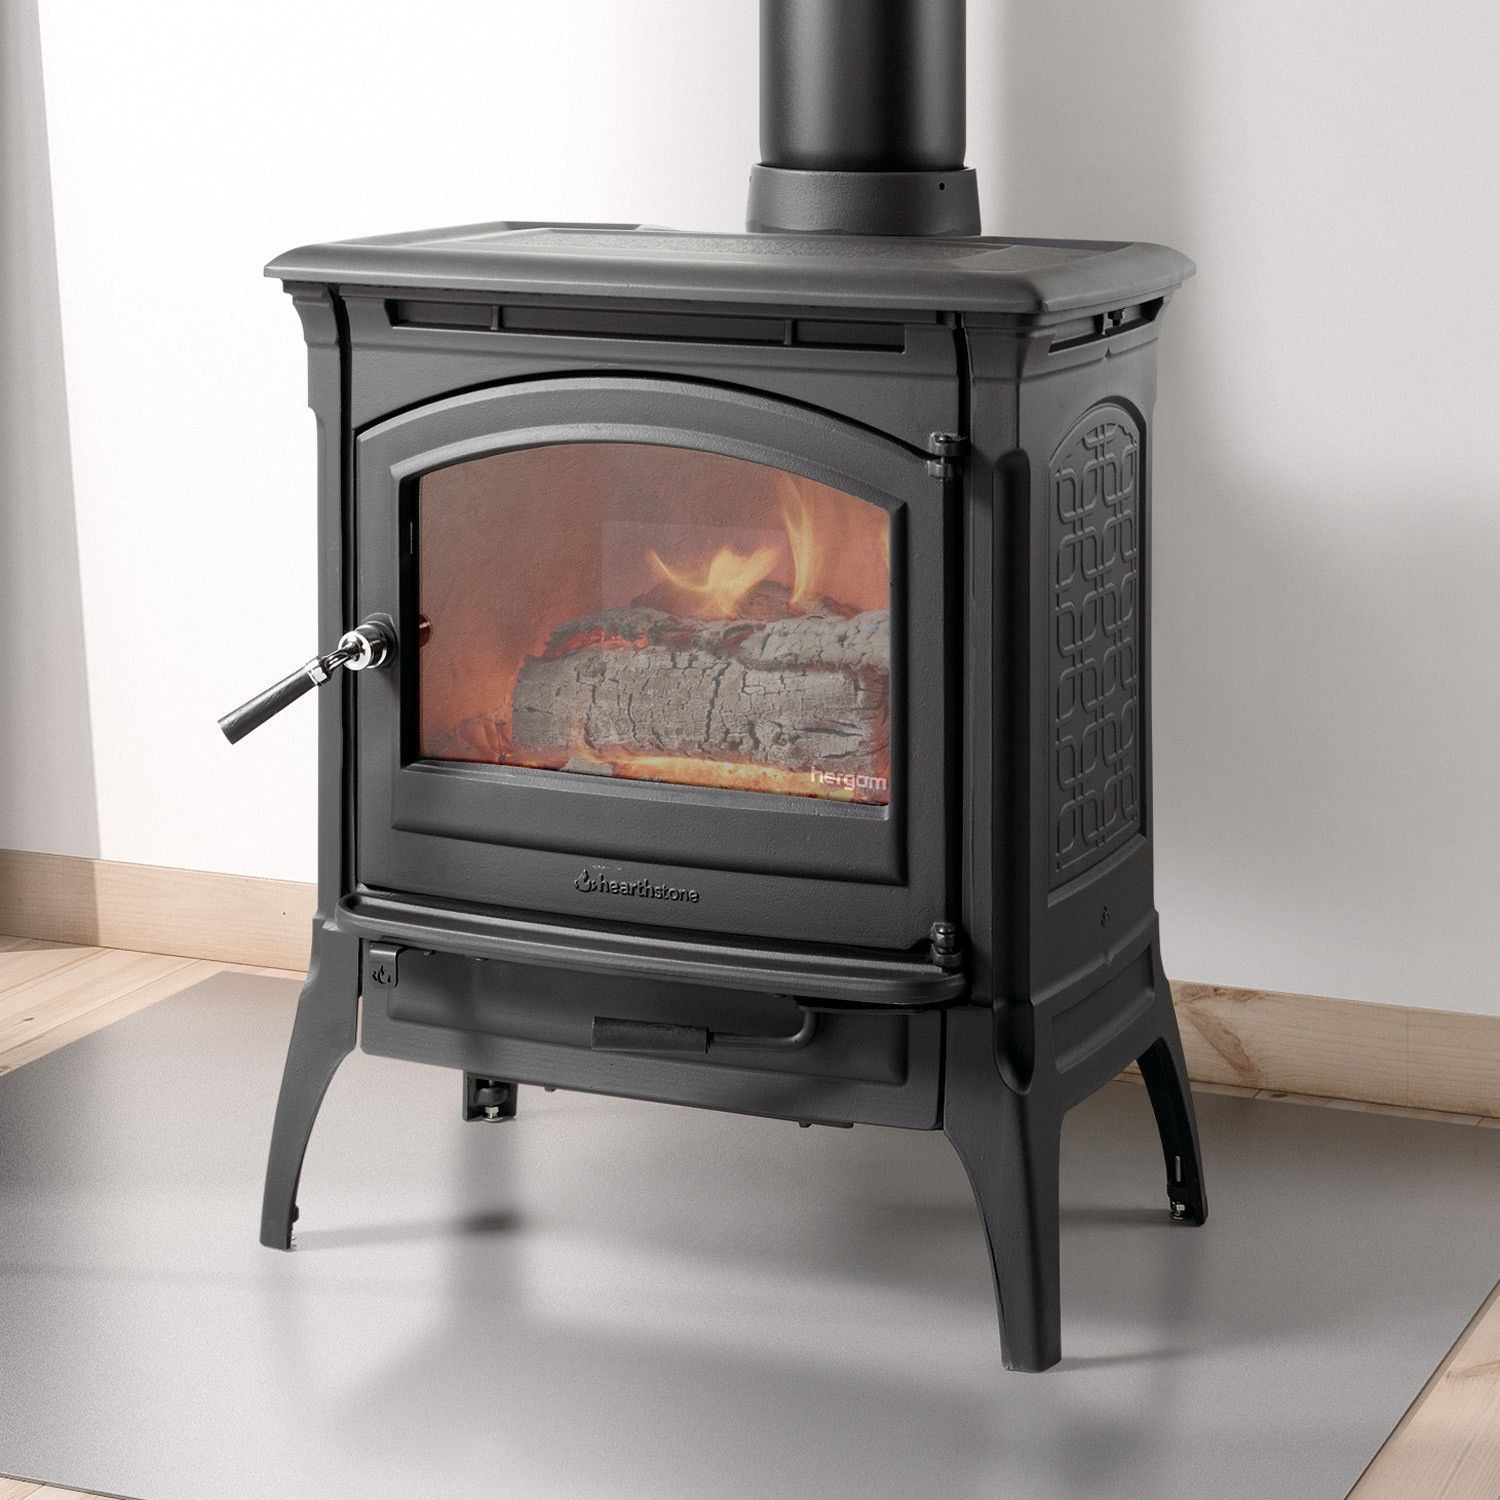 Wood Heat S The Hearthstone Craftsbury Plus Burning Stoves From Other Top Manufacturers Visit One Of Our Showrooms Today